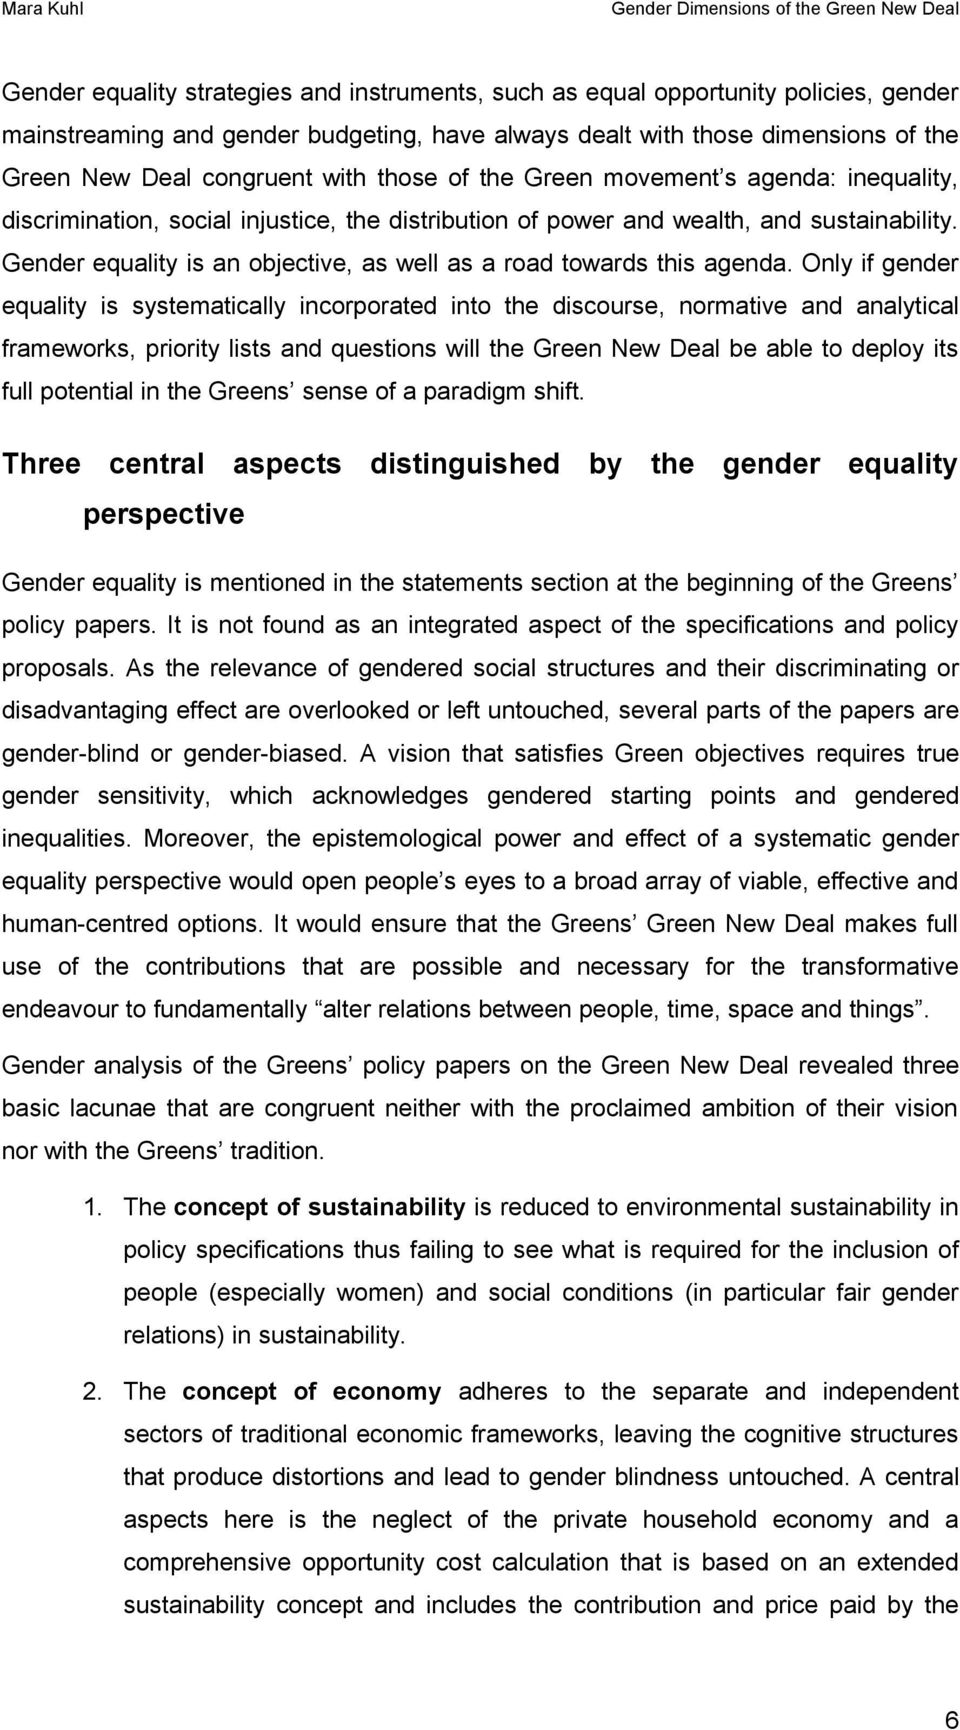 Only if gender equality is systematically incrprated int the discurse, nrmative and analytical framewrks, pririty lists and questins will the Green New Deal be able t deply its full ptential in the